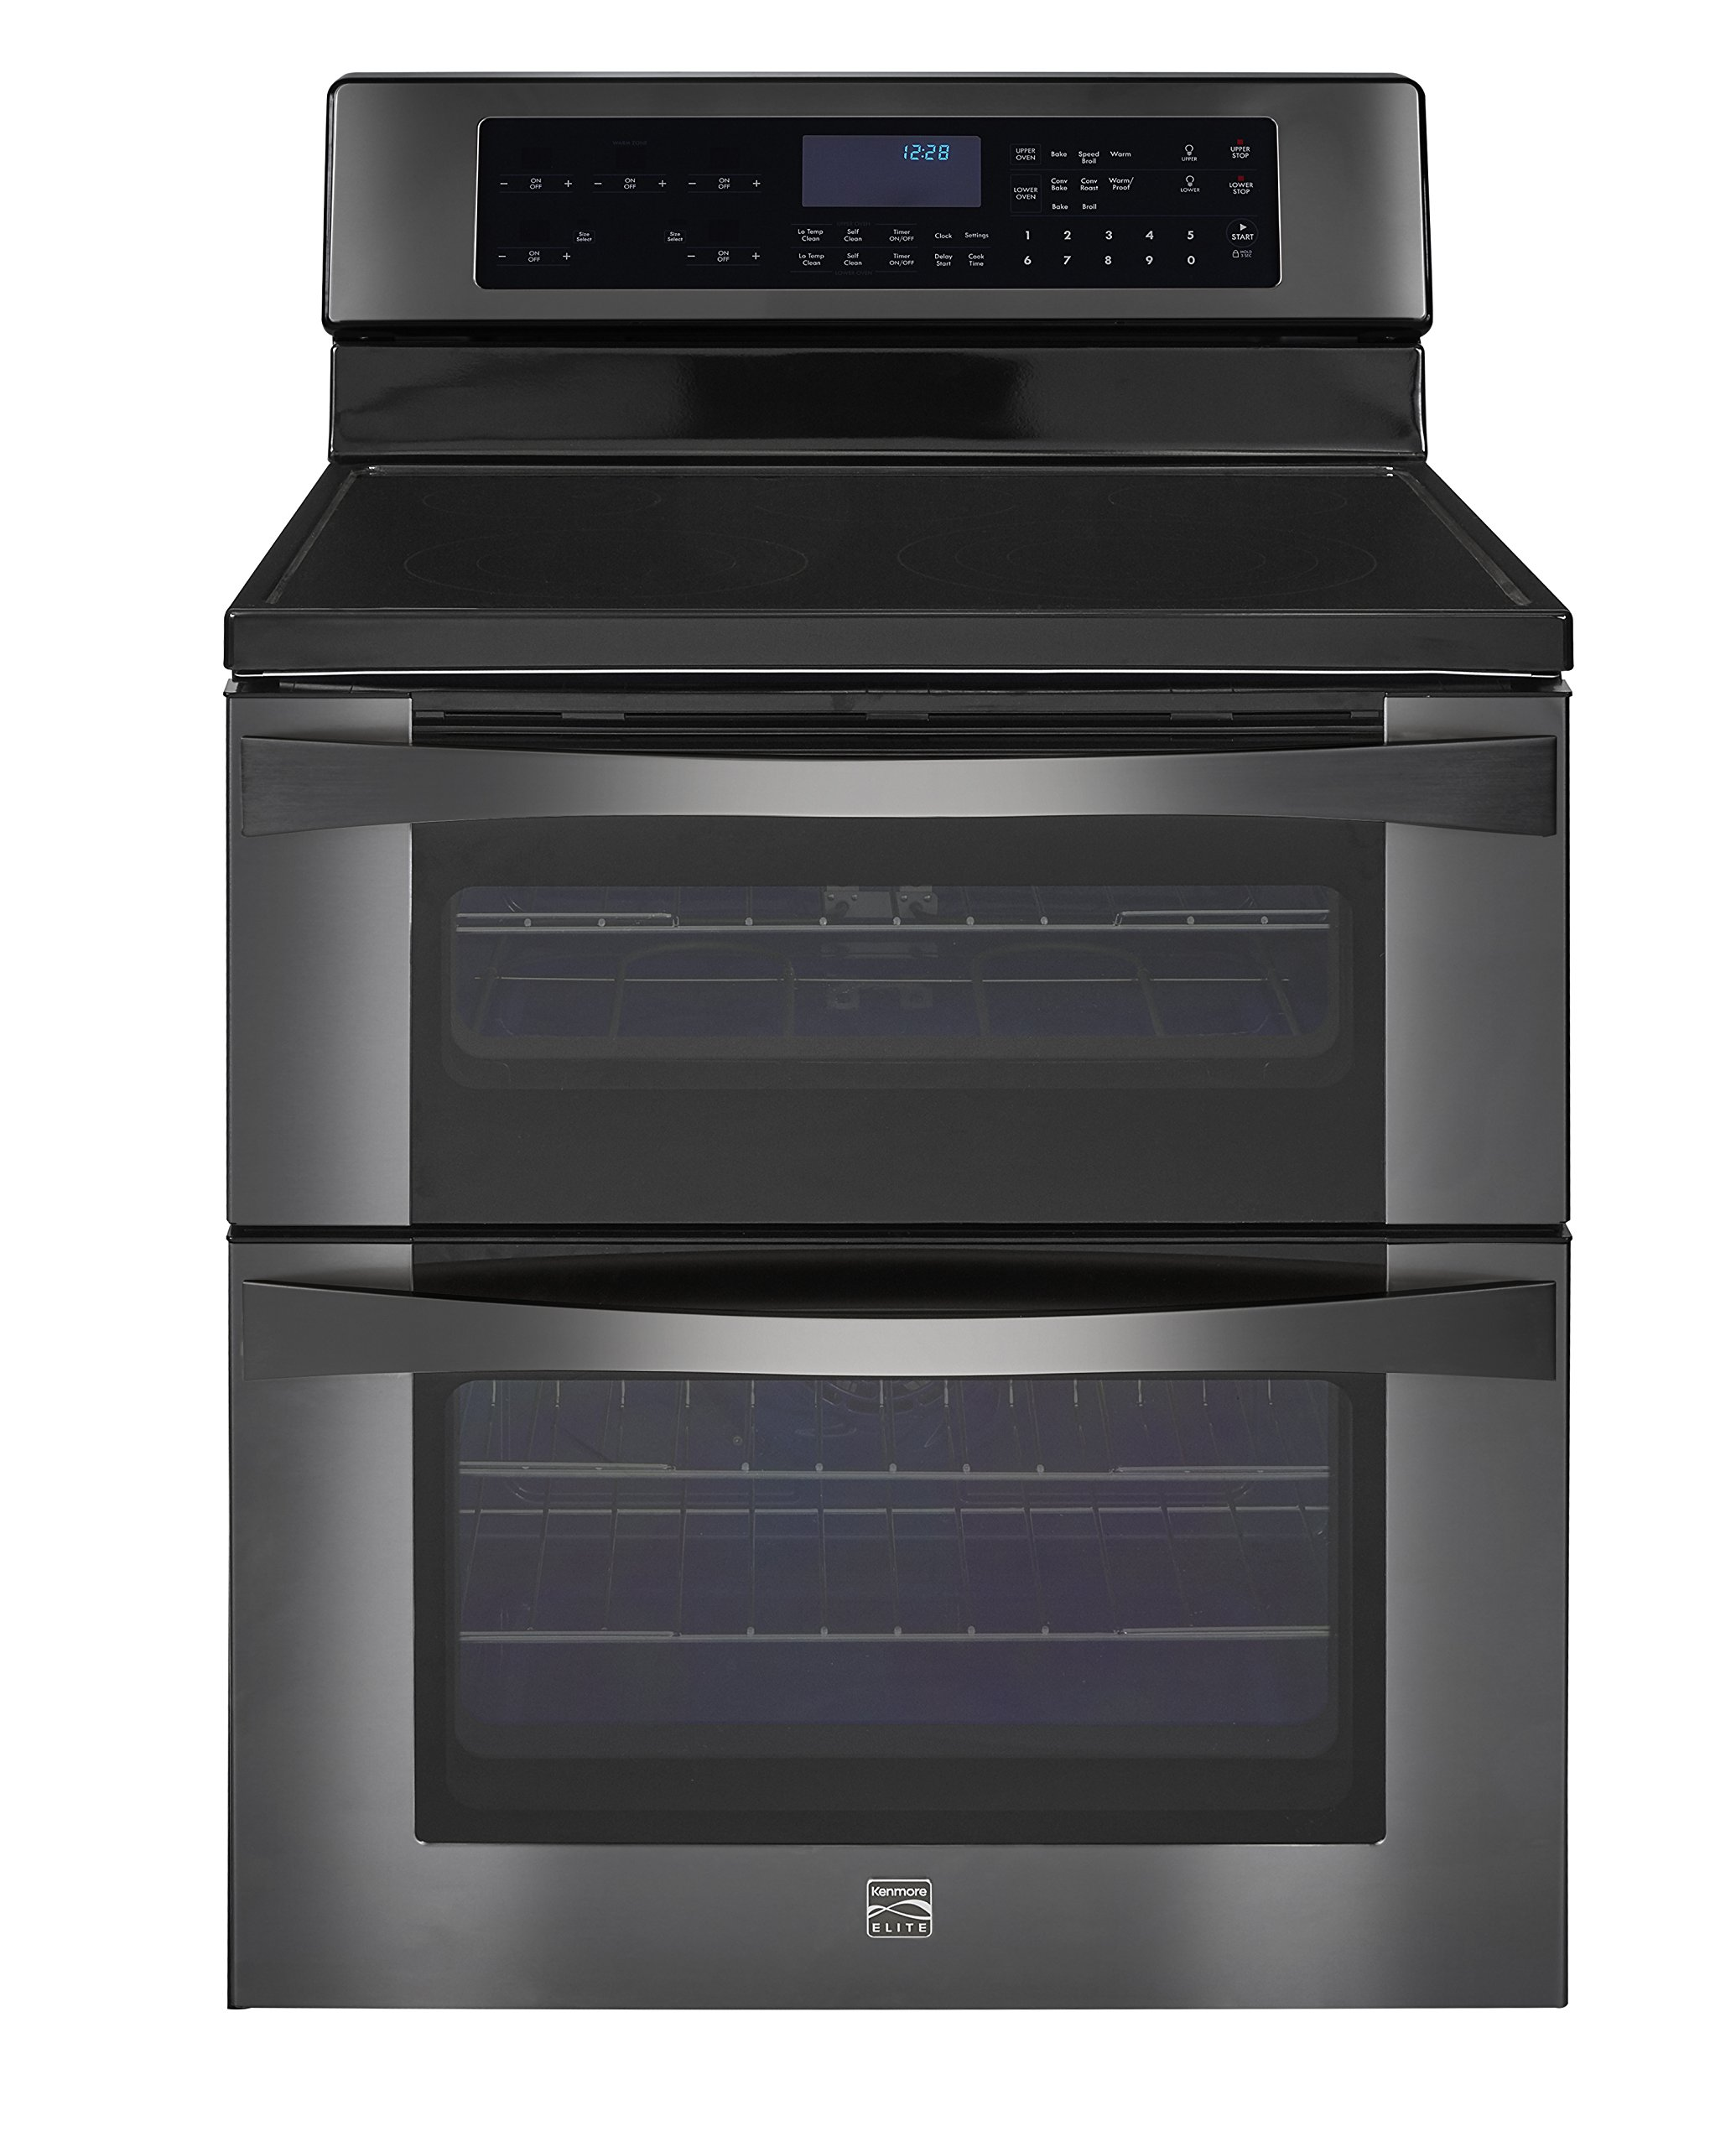 Kenmore Elite 96047 6.7 cu. ft. Self Clean Electric Double Oven Range in Black Stainless Steel, includes delivery and hookup (Available in select cities only)